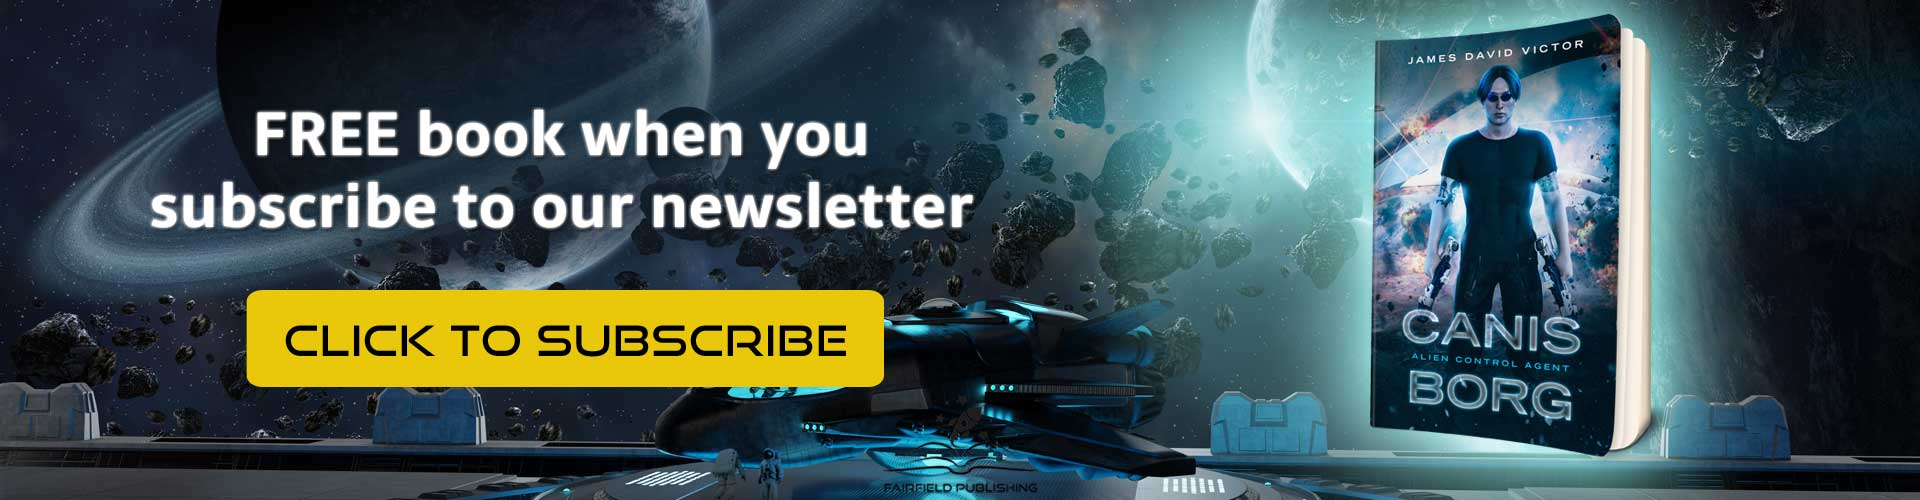 Free book when you subscribe to our sci-fi newsletter